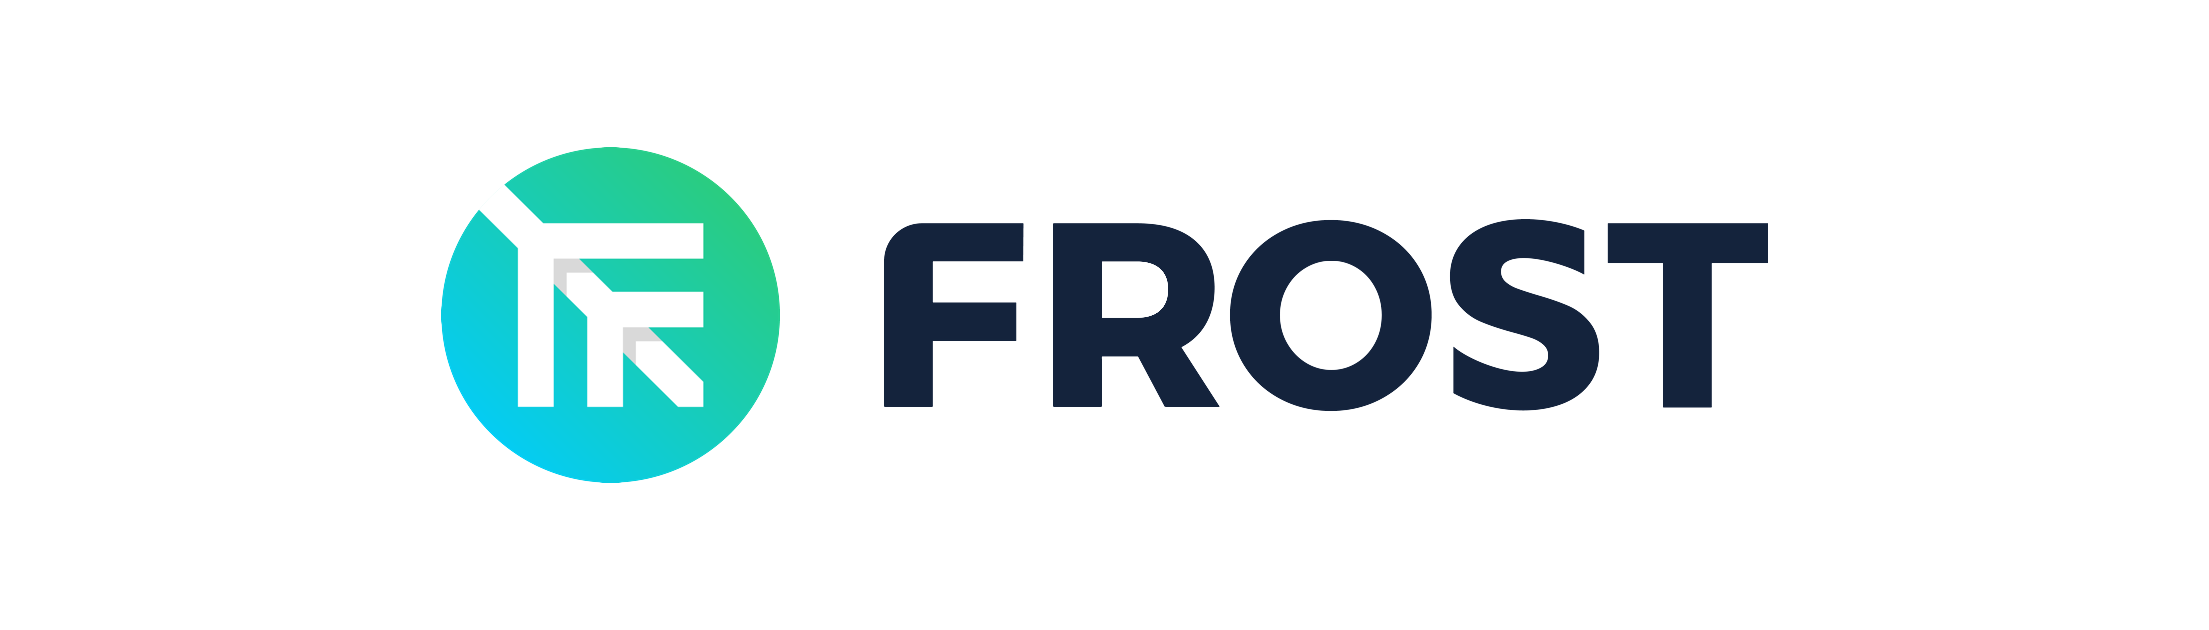 Frost Beta-Testing New Way to Bank and Find Utility Deals